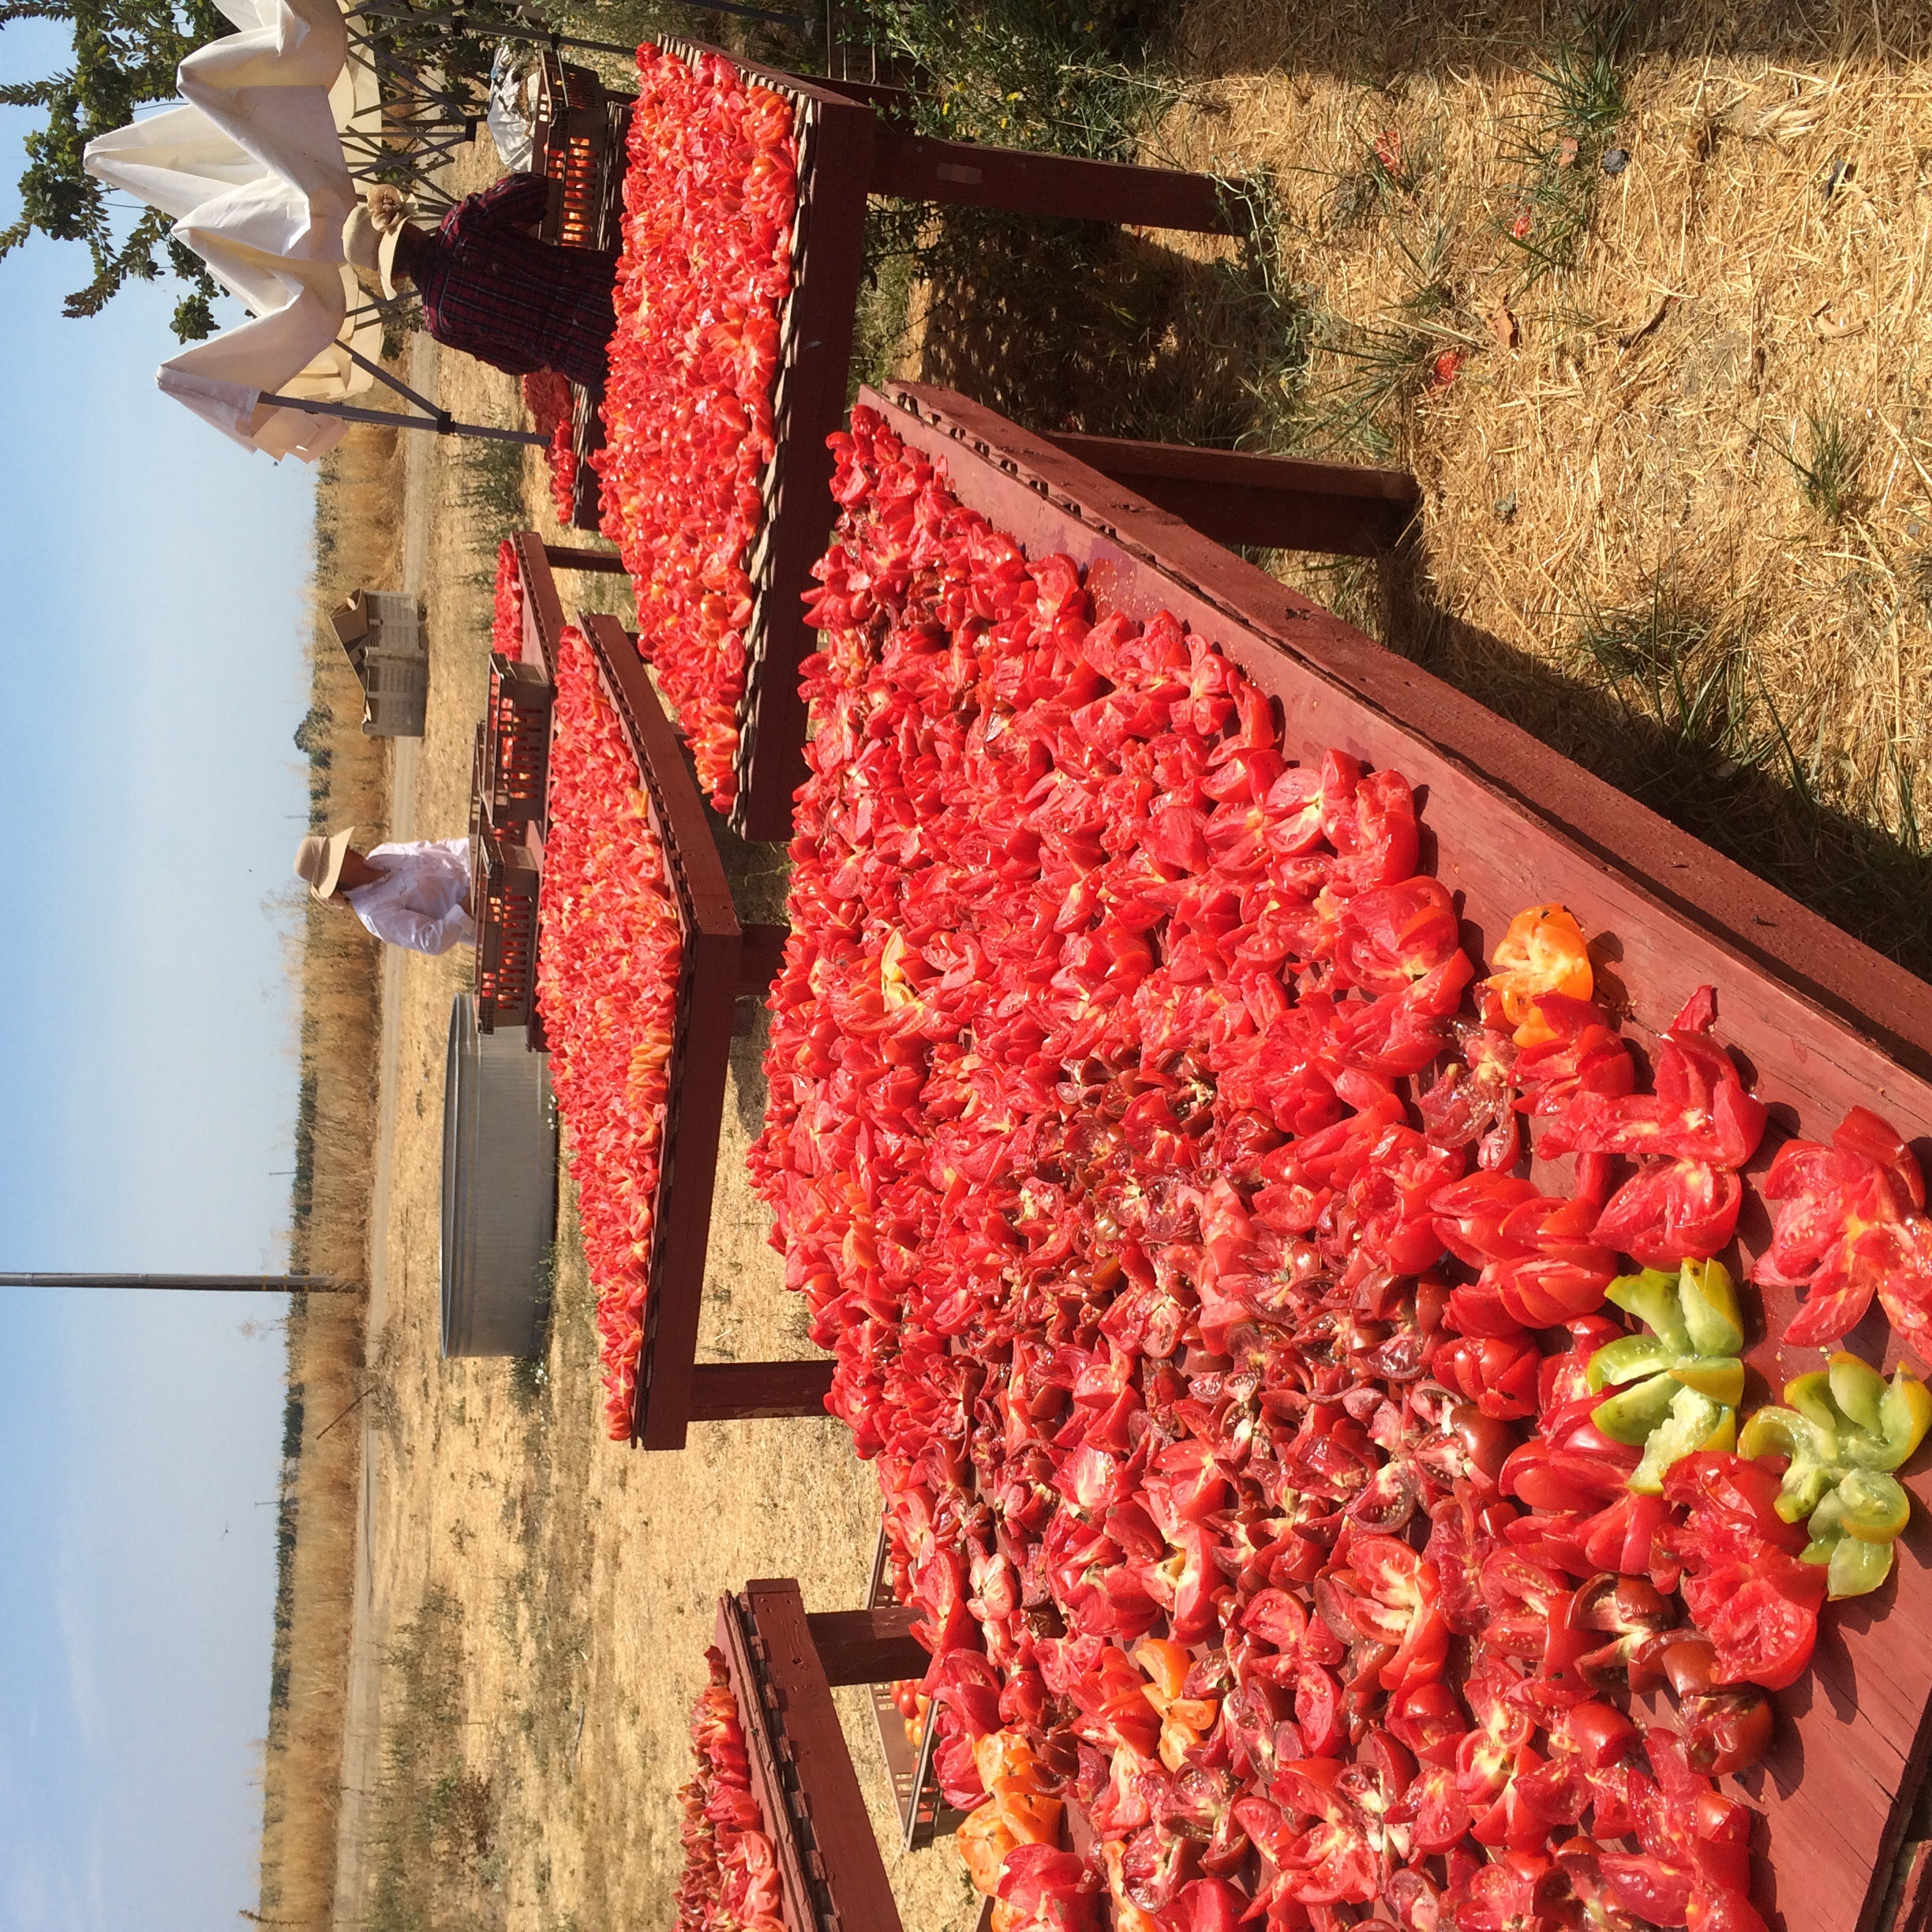 Juanita and Rosa cut and arrange fresh, organic heirloom tomatoes to dry in the sun.